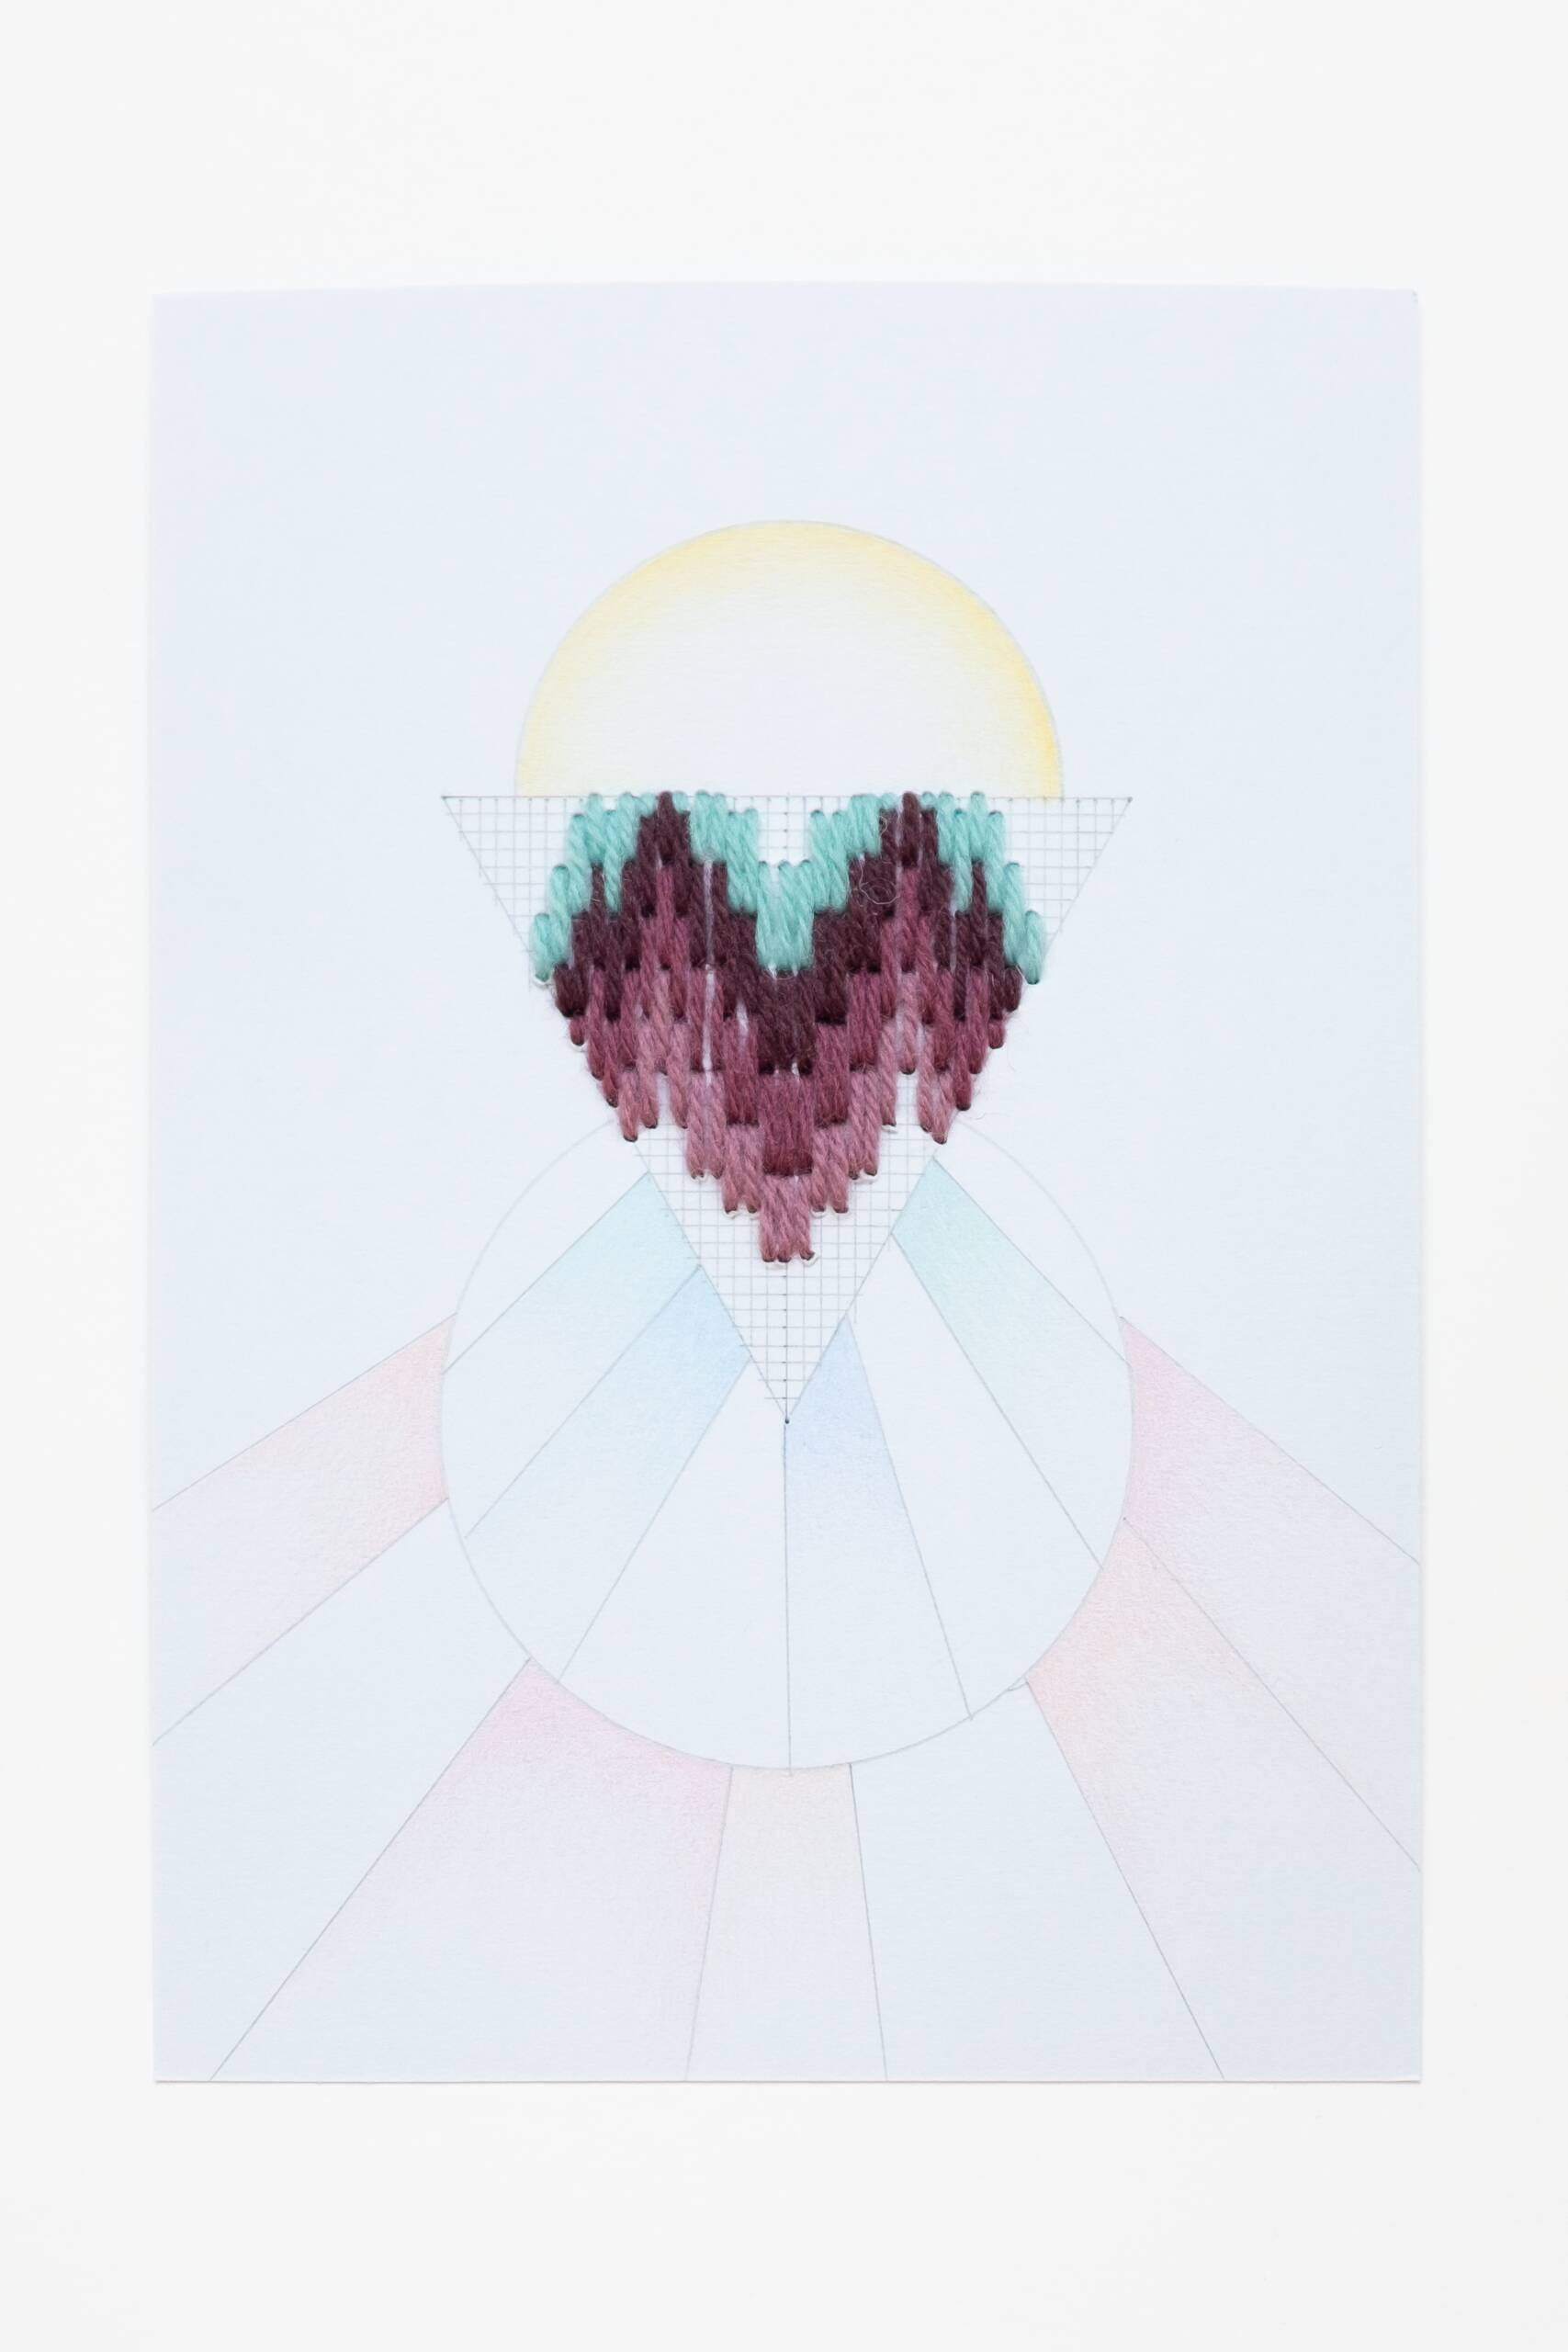 Bargello triangle [teal-maroon on blue], Hand-embroidered wool thread, pencil and colored pencil on paper, 2020